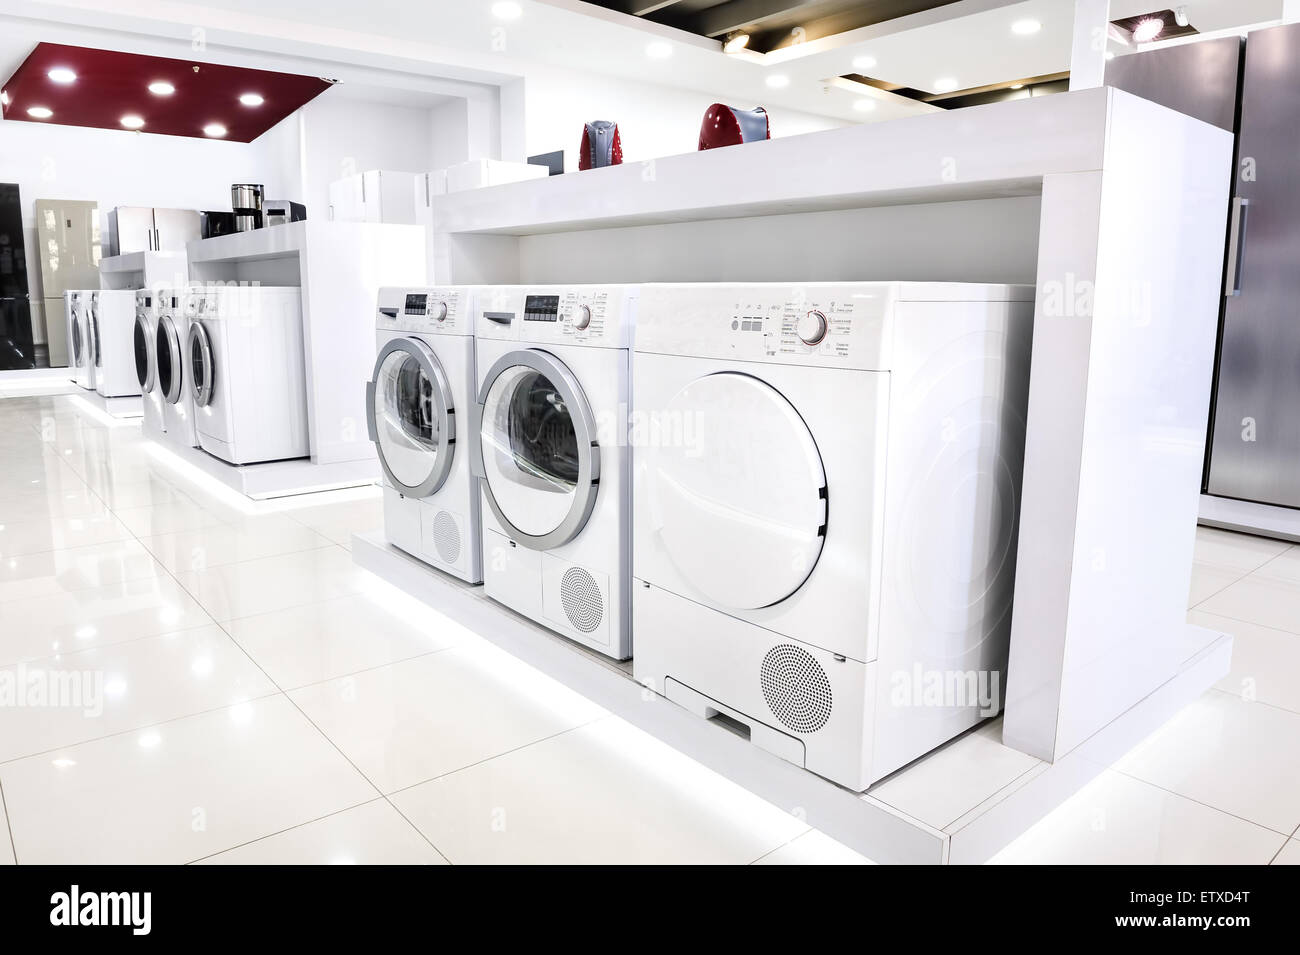 Uncategorized Kitchener Appliance Stores appliance stores kitchener tboots us washing machines for sale in a store exeter uk stock photo kitchener